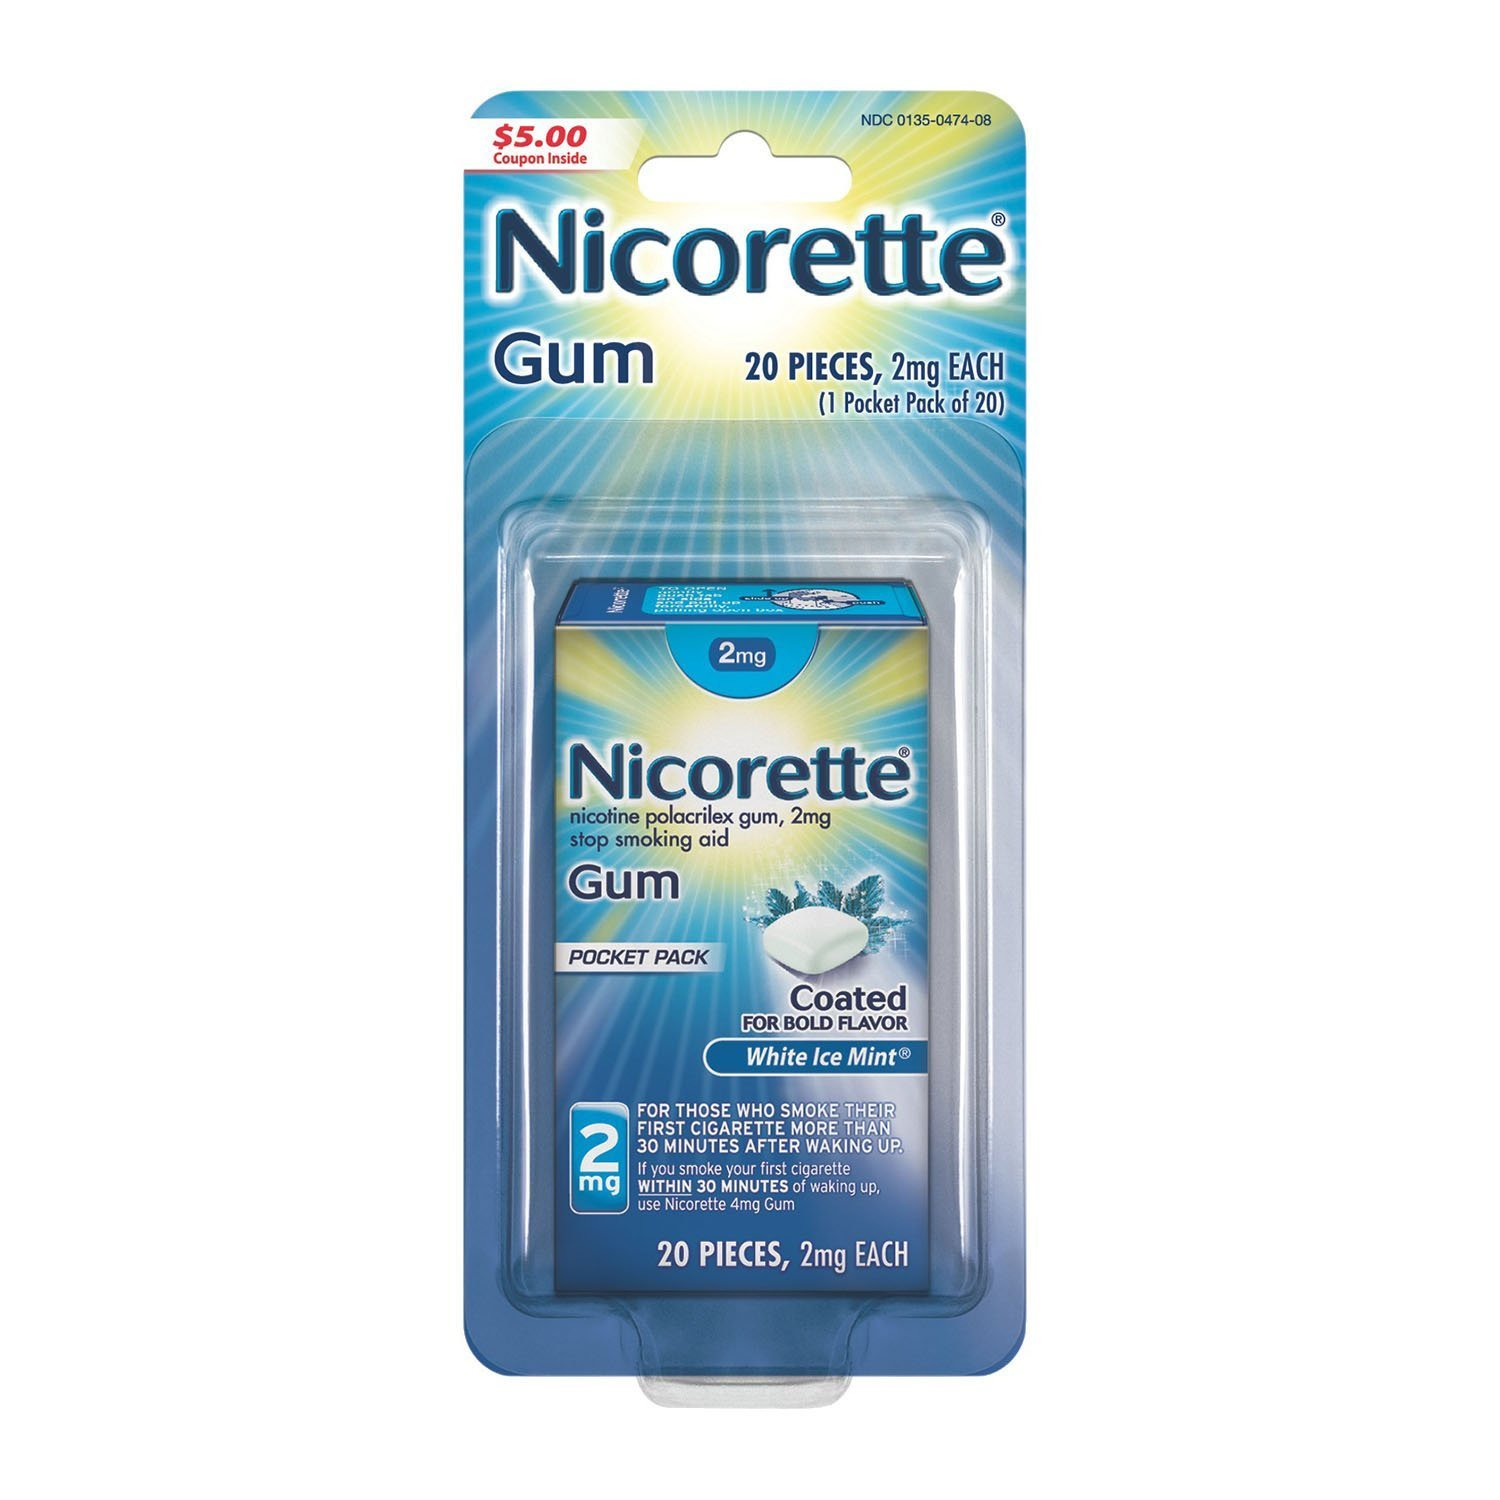 Nicorette Nicotine Gum, Stop Smoking Aid, 2mg, White Ice Mint Flavor, 20 count